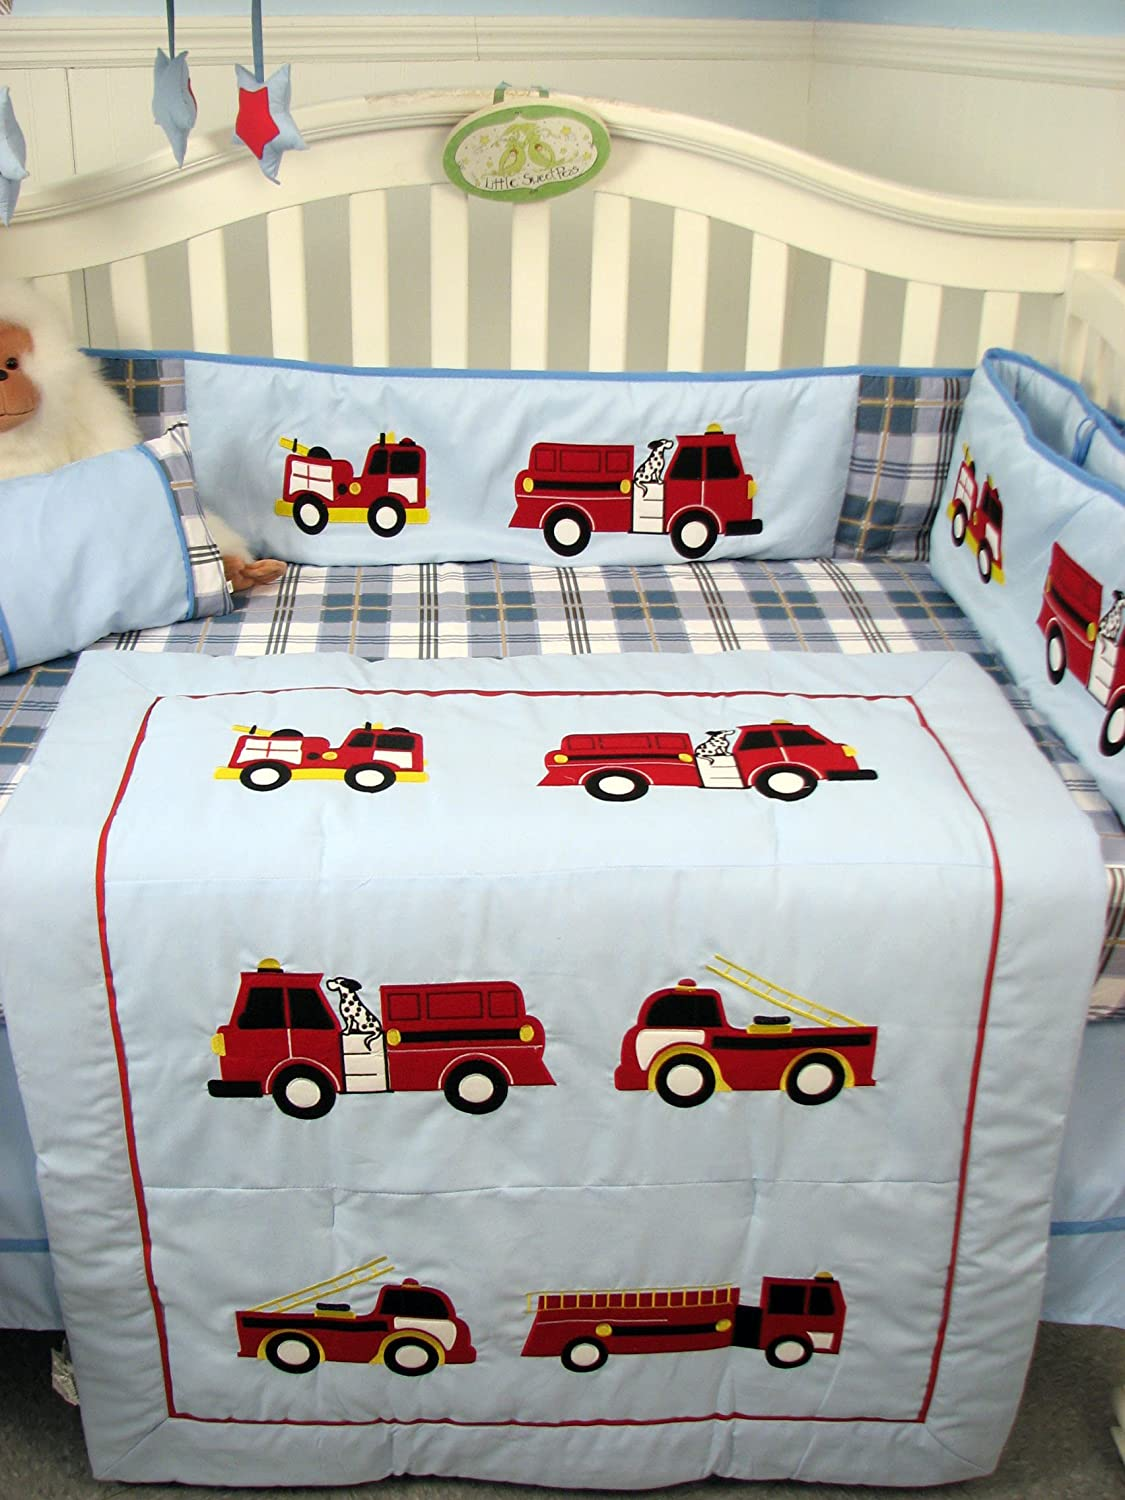 Amazon.com : SoHo Fire Trucks Baby Crib Nursery Bedding Set 13 Pcs Included  Diaper Bag With Changing Pad U0026 Bottle Case : Fire Truck Bedding For A Crib  : ...